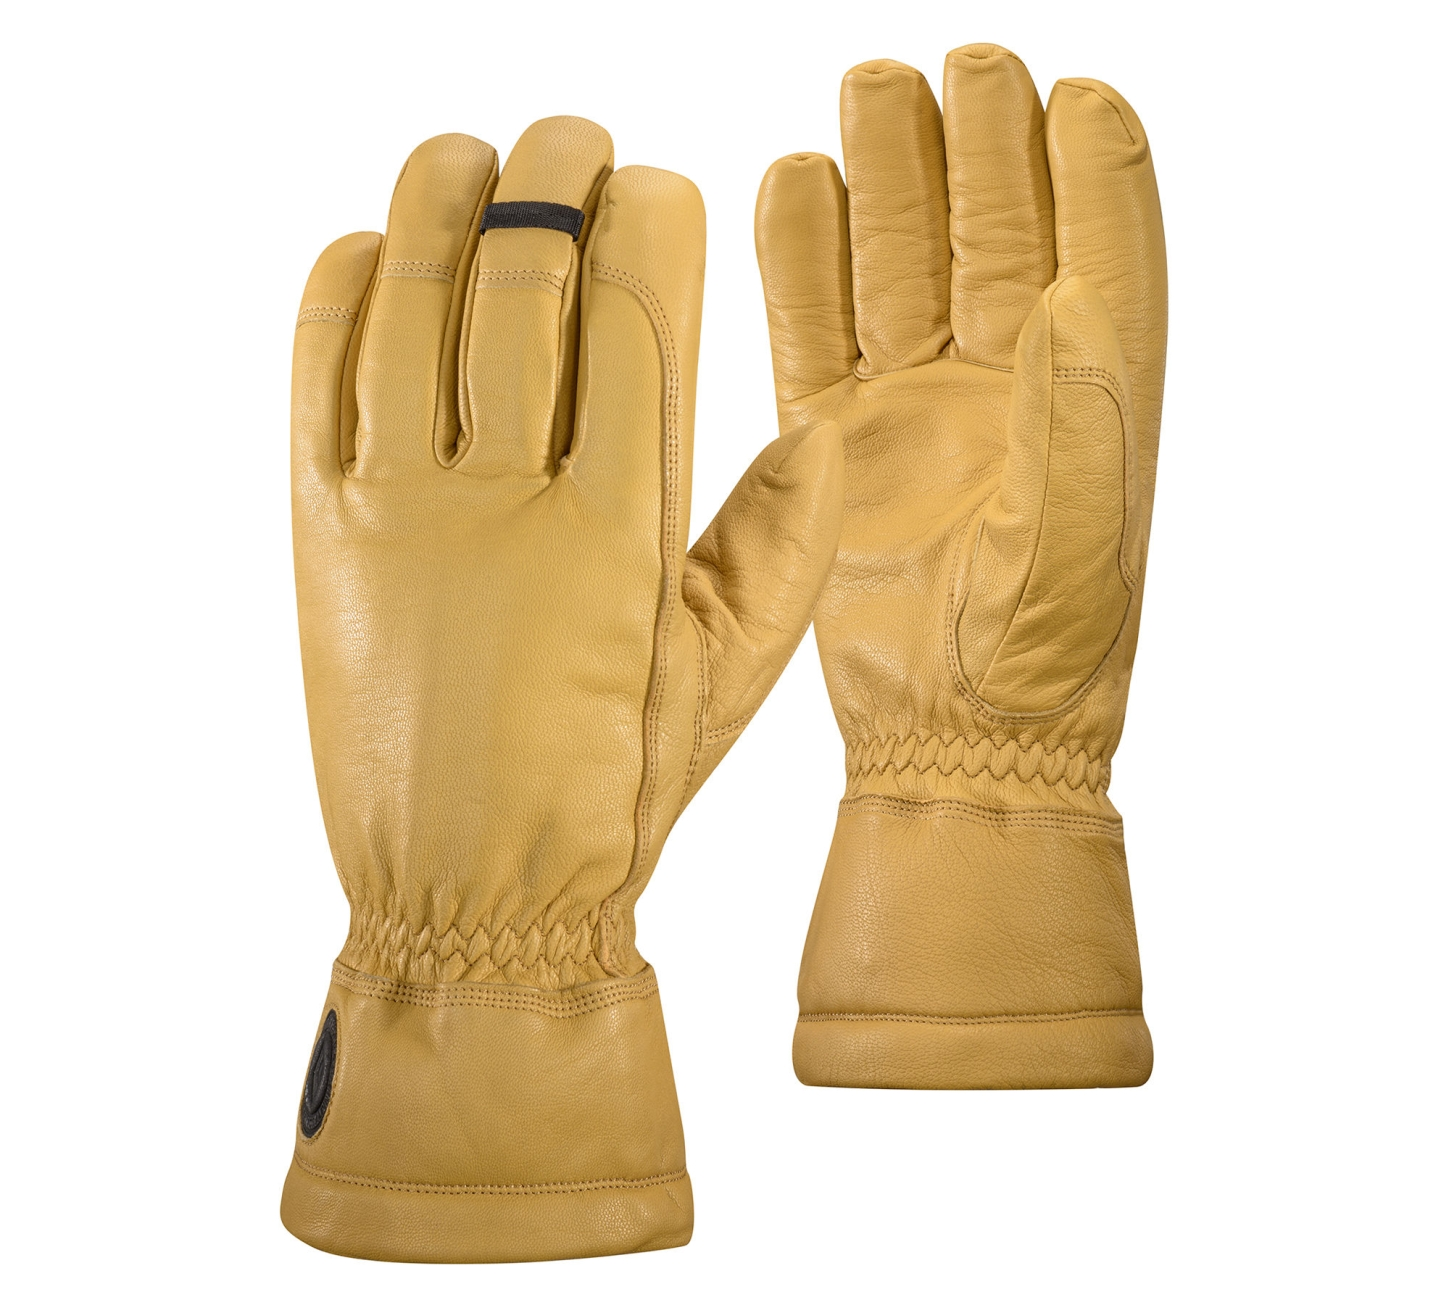 Black Diamond Work Gloves Natural-30